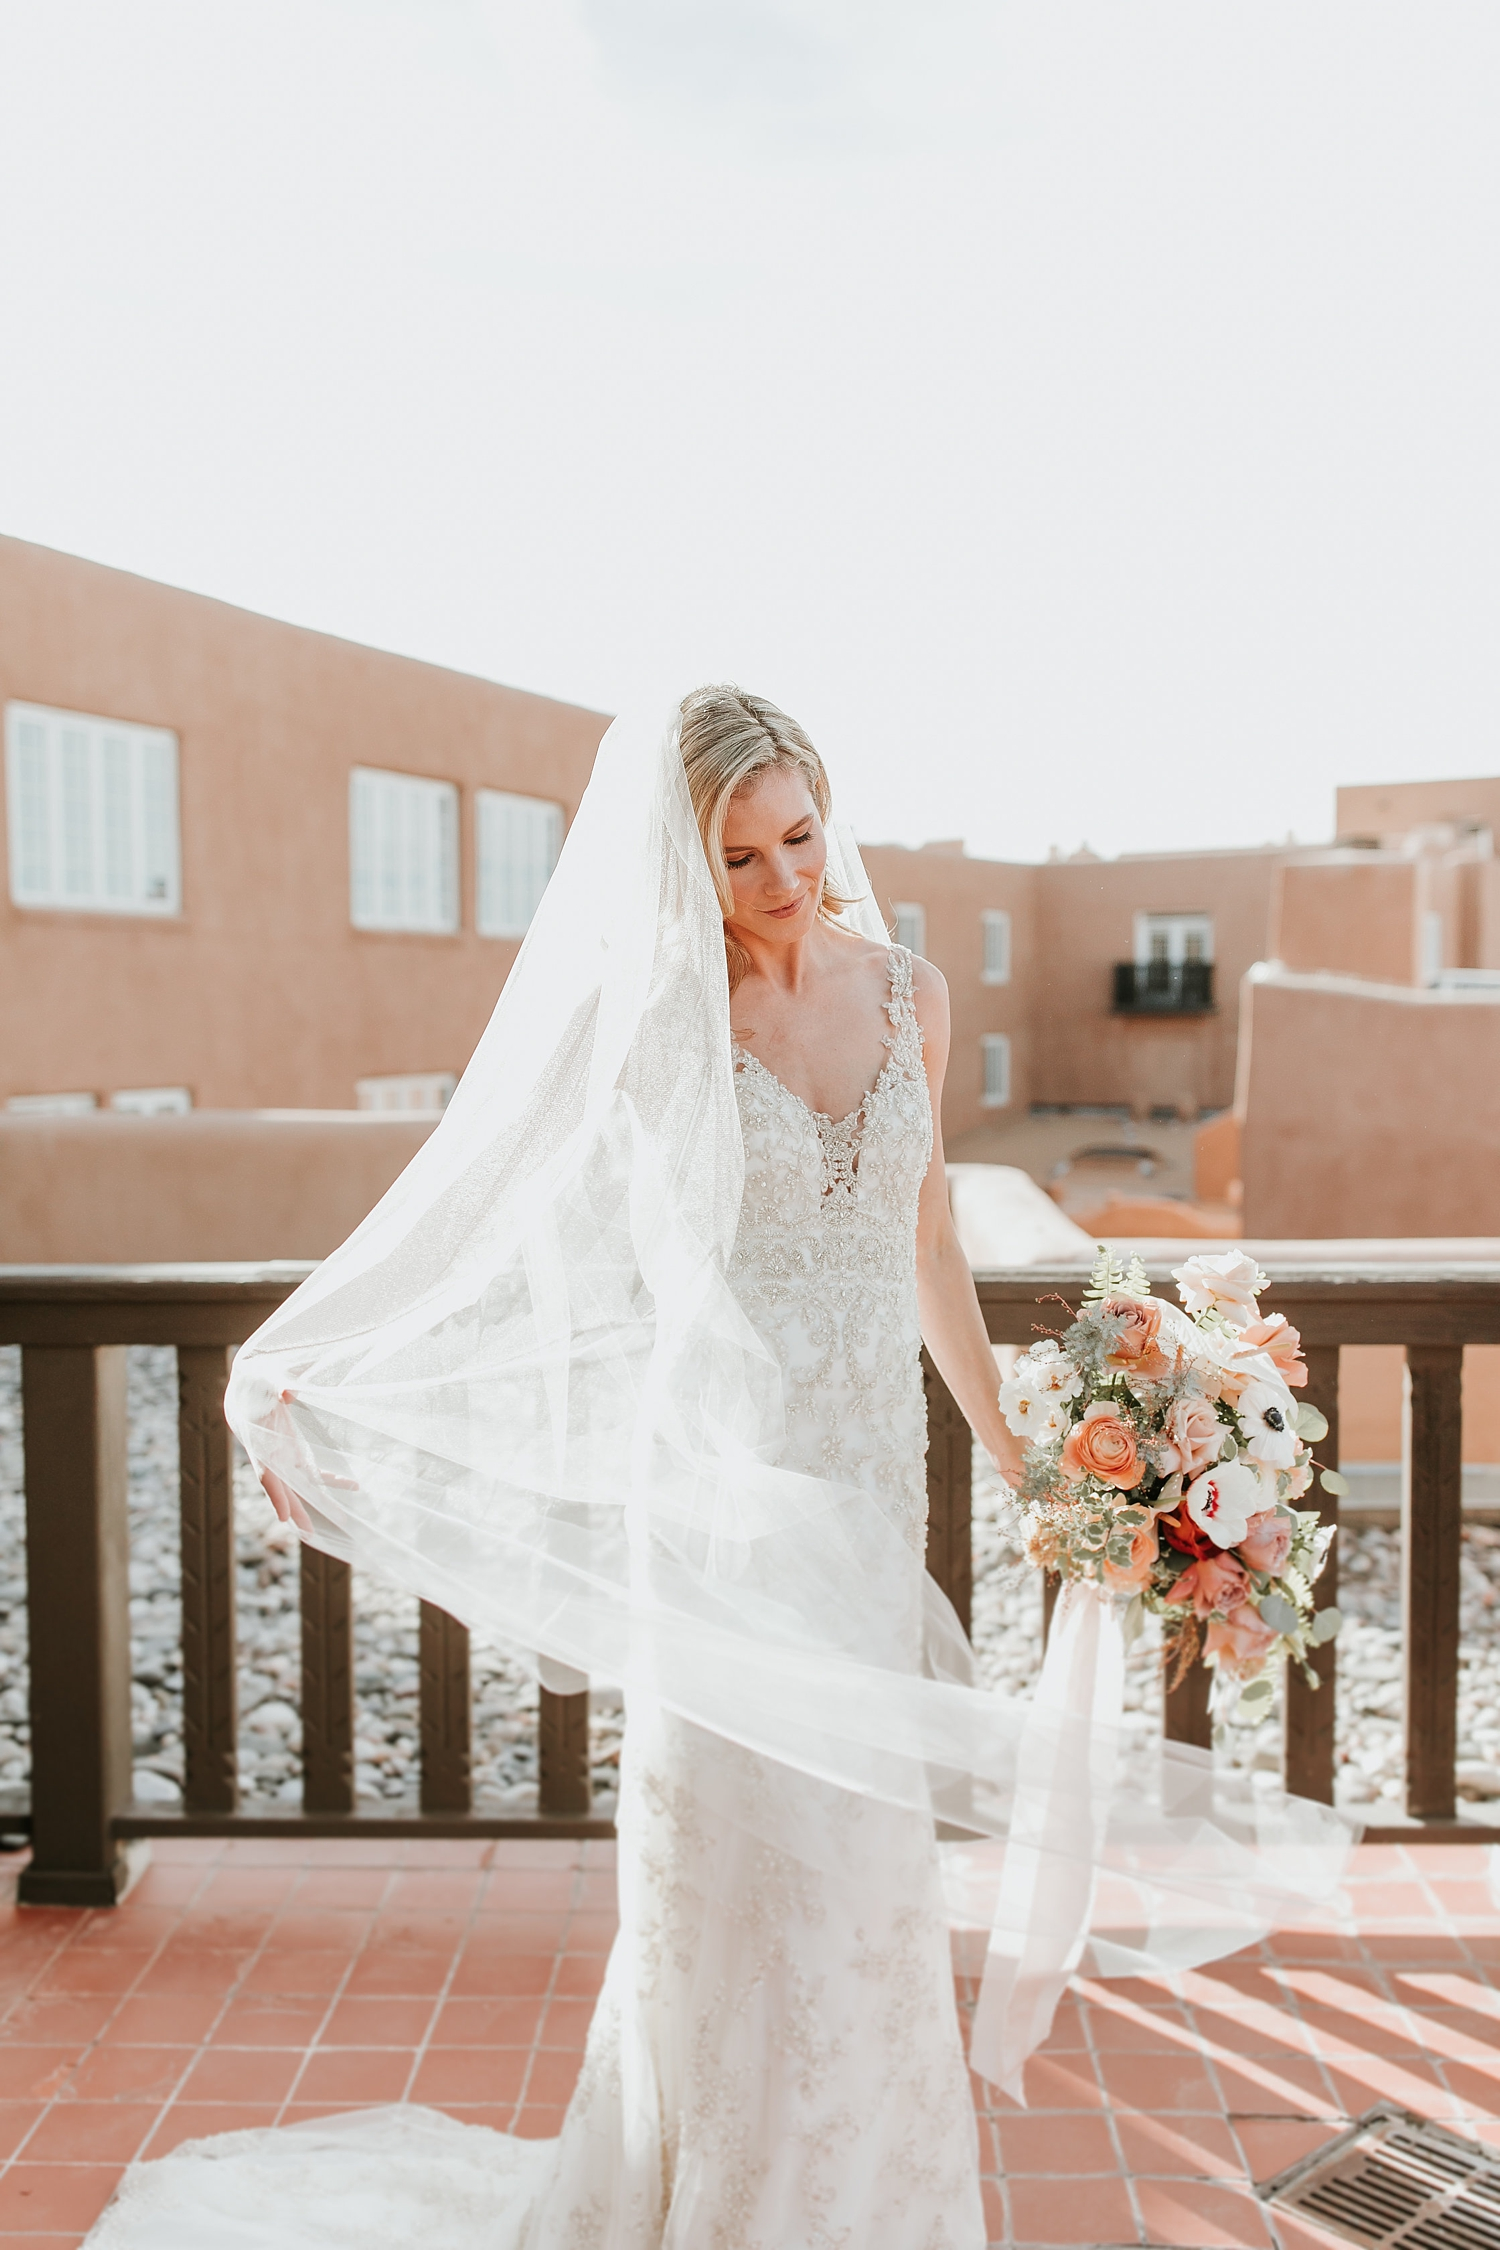 Alicia+lucia+photography+-+albuquerque+wedding+photographer+-+santa+fe+wedding+photography+-+new+mexico+wedding+photographer+-+la+fonda+wedding+-+la+fonda+winter+wedding_0031.jpg